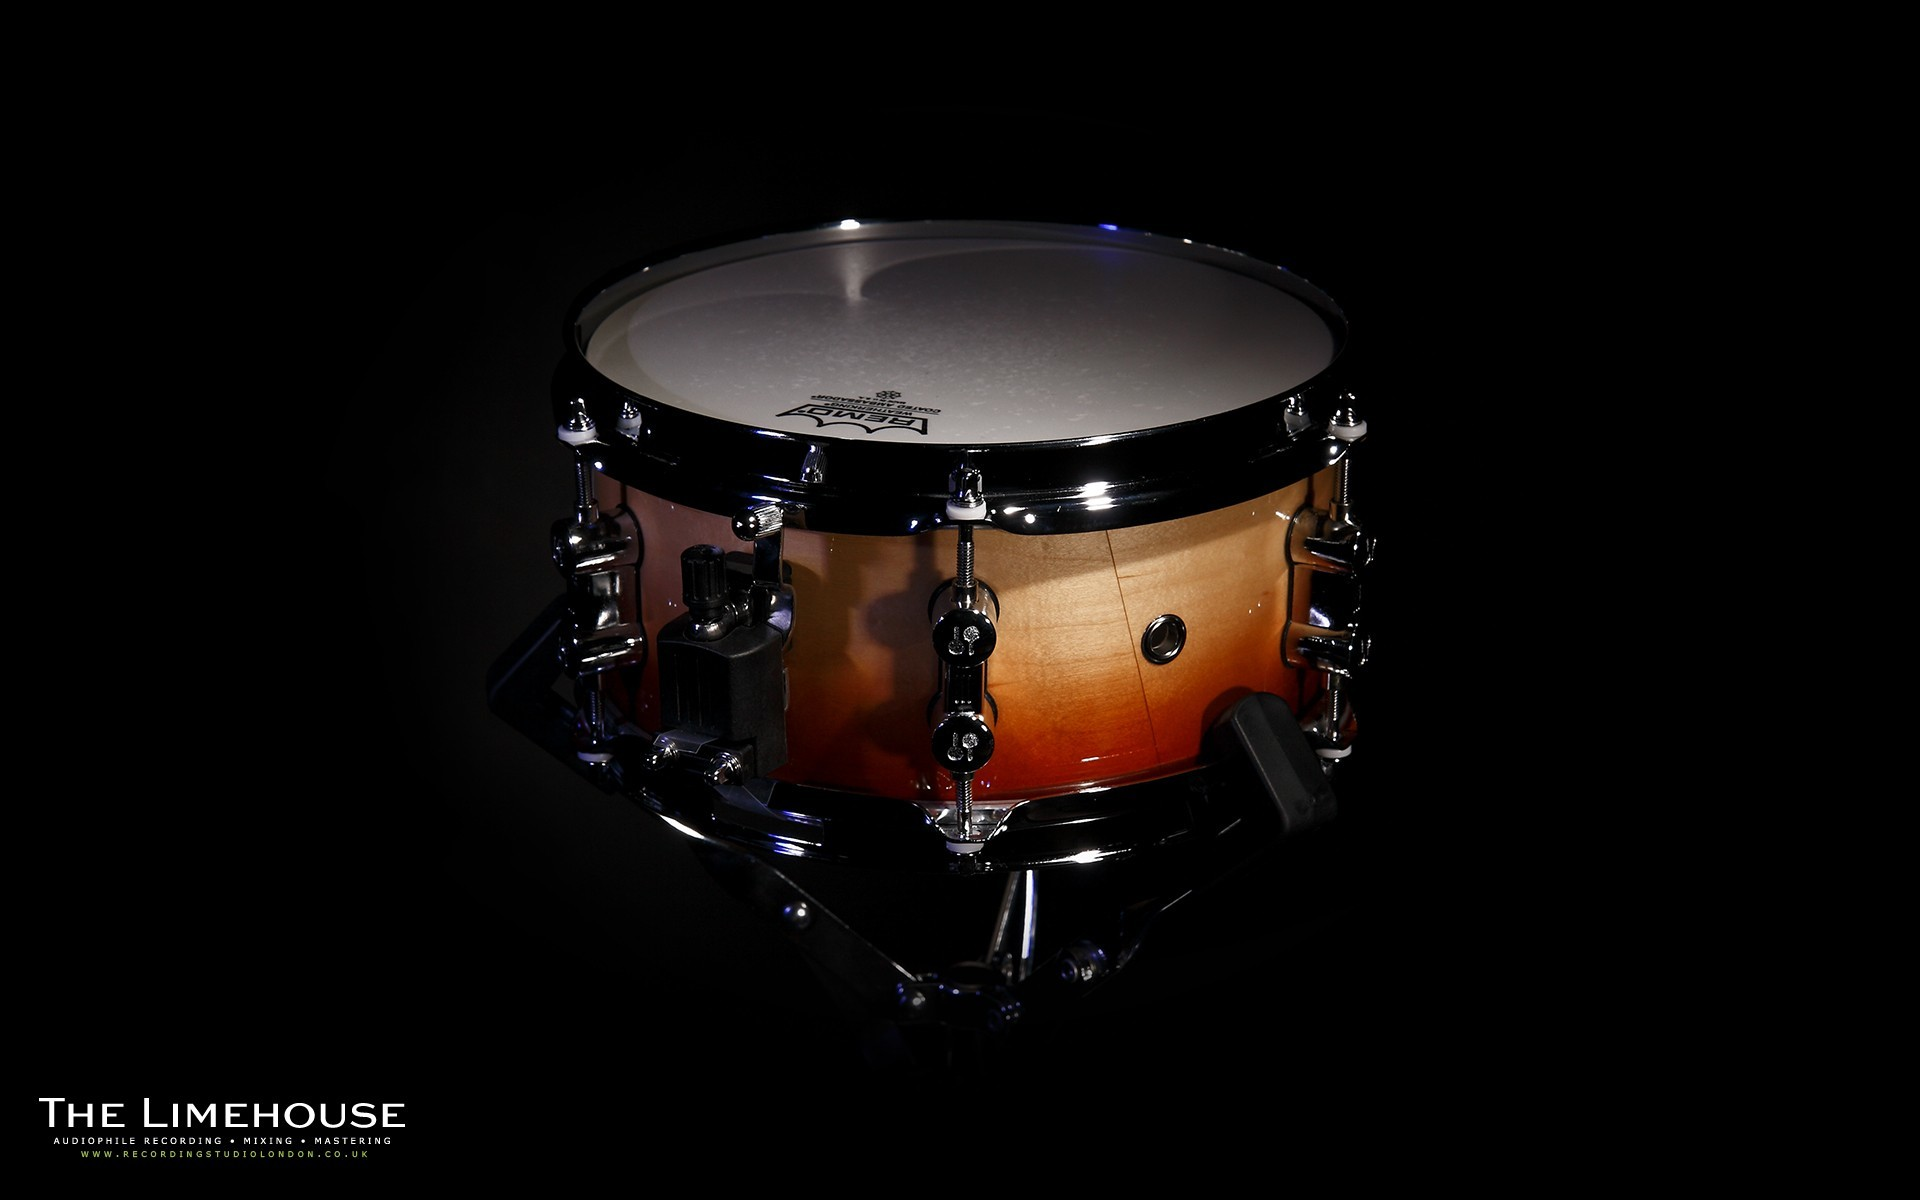 1920x1200 ... 13 Drums HD Wallpapers | Backgrounds - Wallpaper Abyss ...